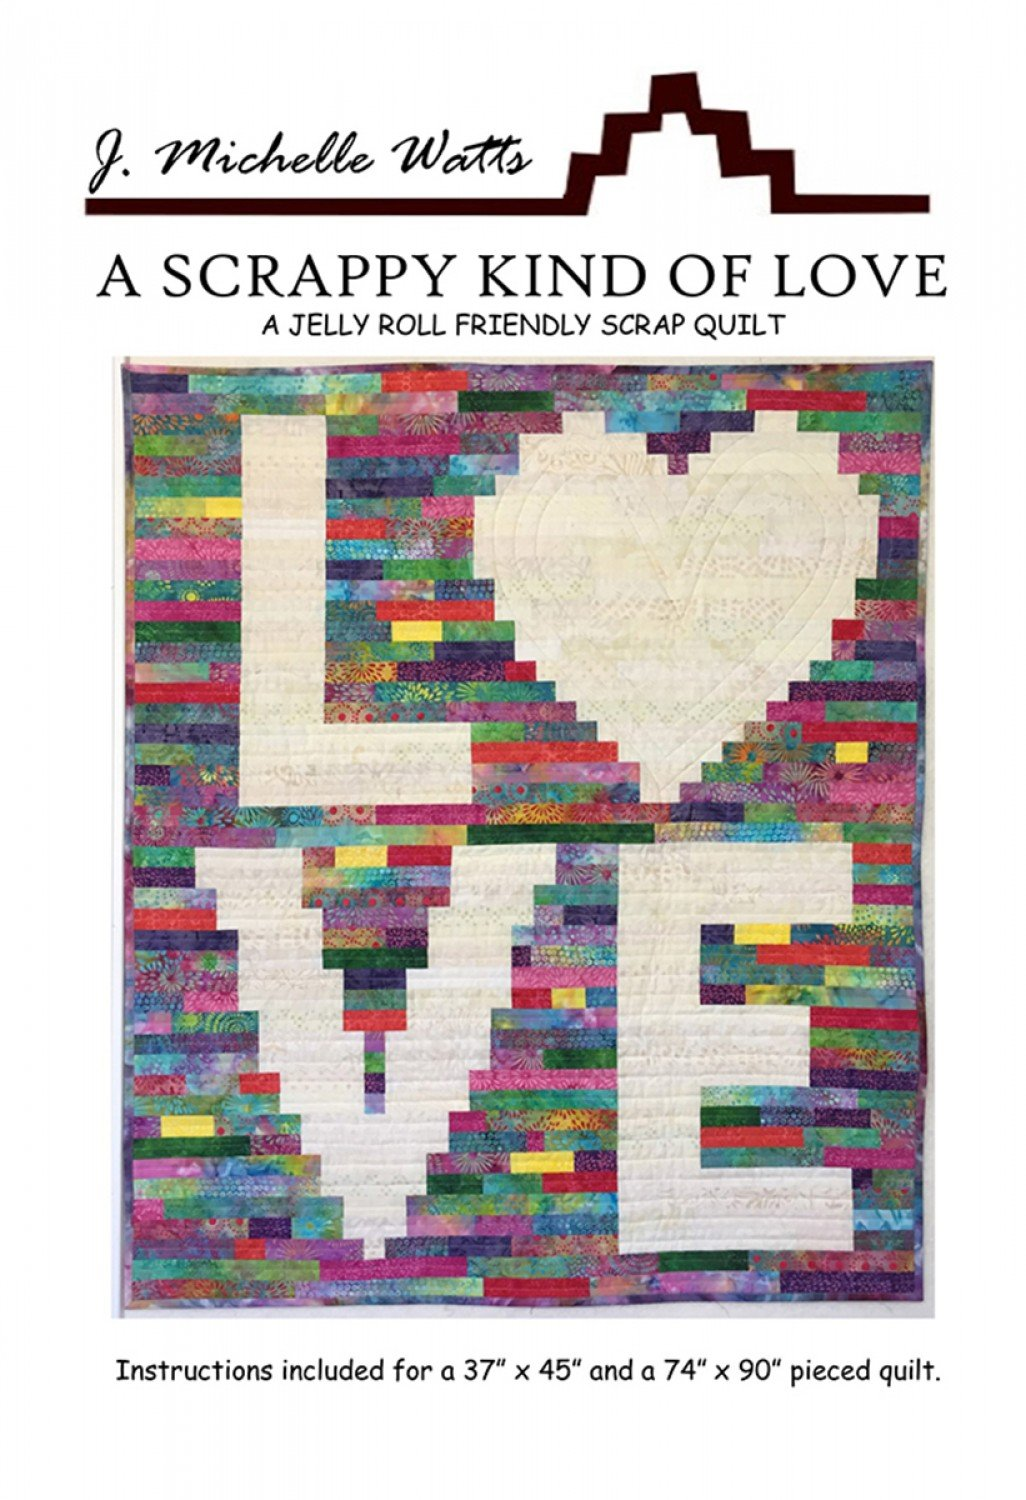 A Scrappy Kind of Love pattern